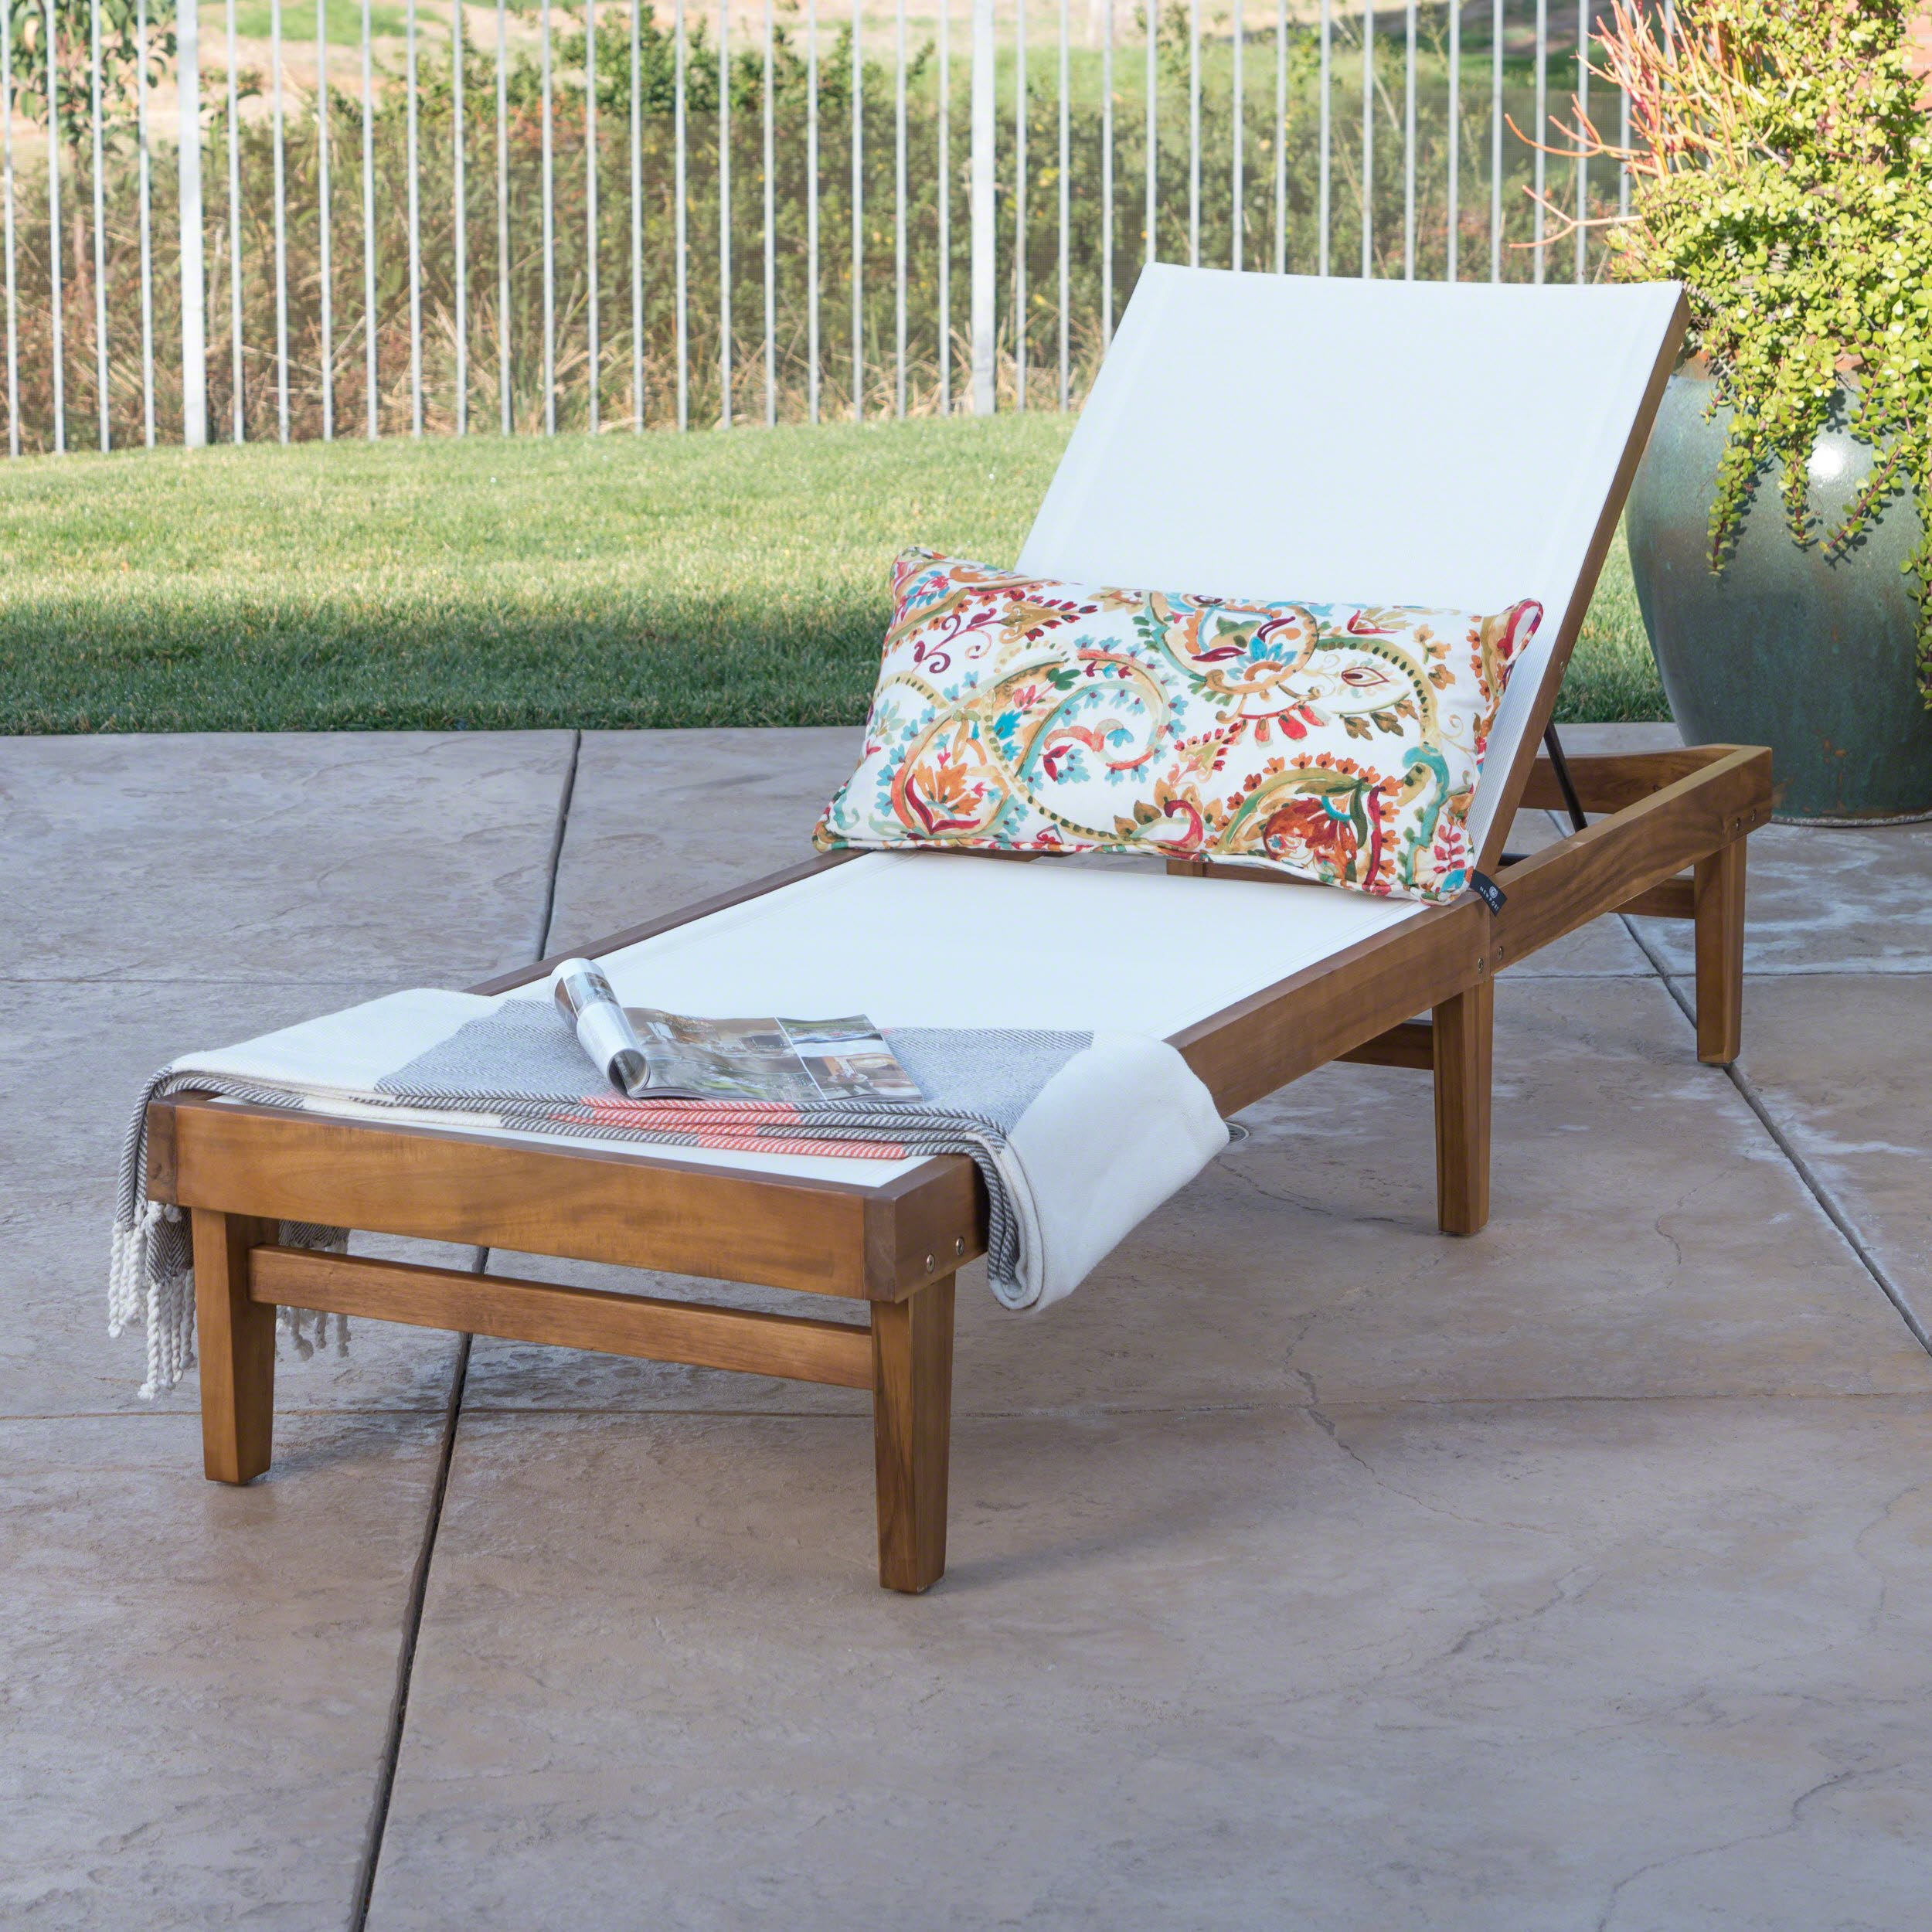 Great Deal Furniture Della Outdoor White Mesh Chaise Lounge with Teak Finished Acacia Wood Frame by Great Deal Furniture